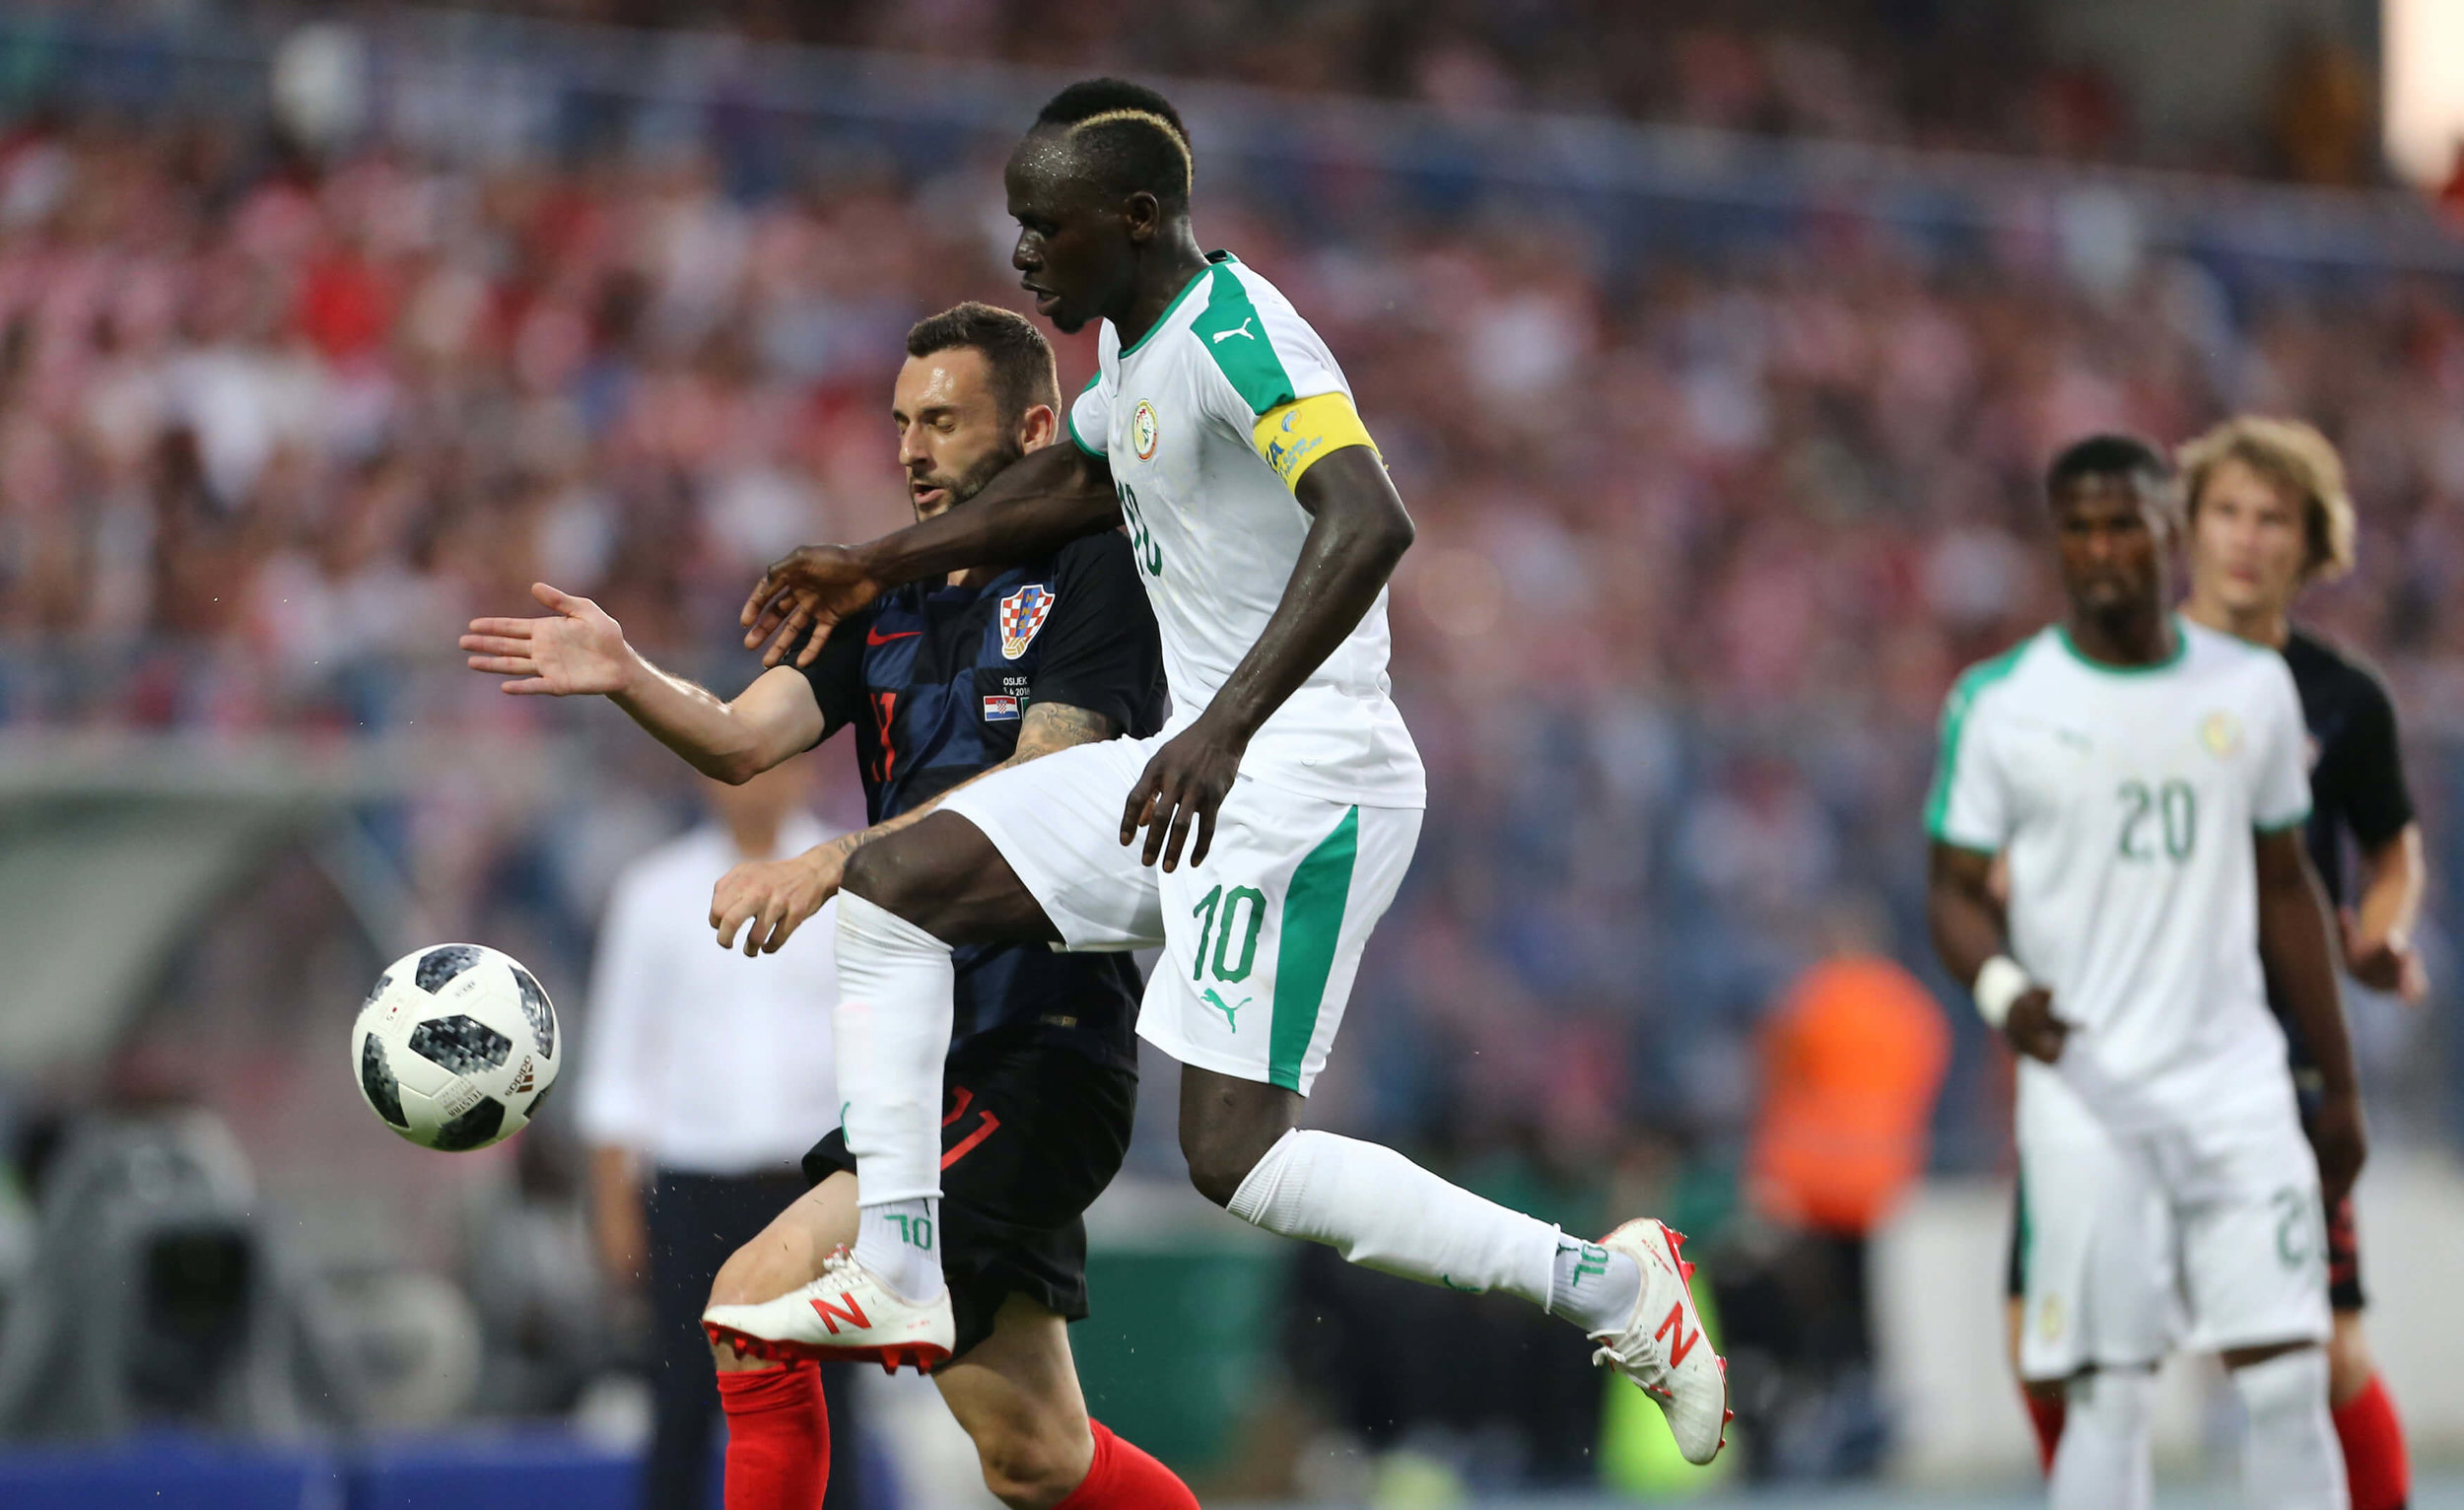 Luka Modric and Croatia will arrive in Russia full of confidence after a 2-1 victory against Sadio Mane and Senegal.